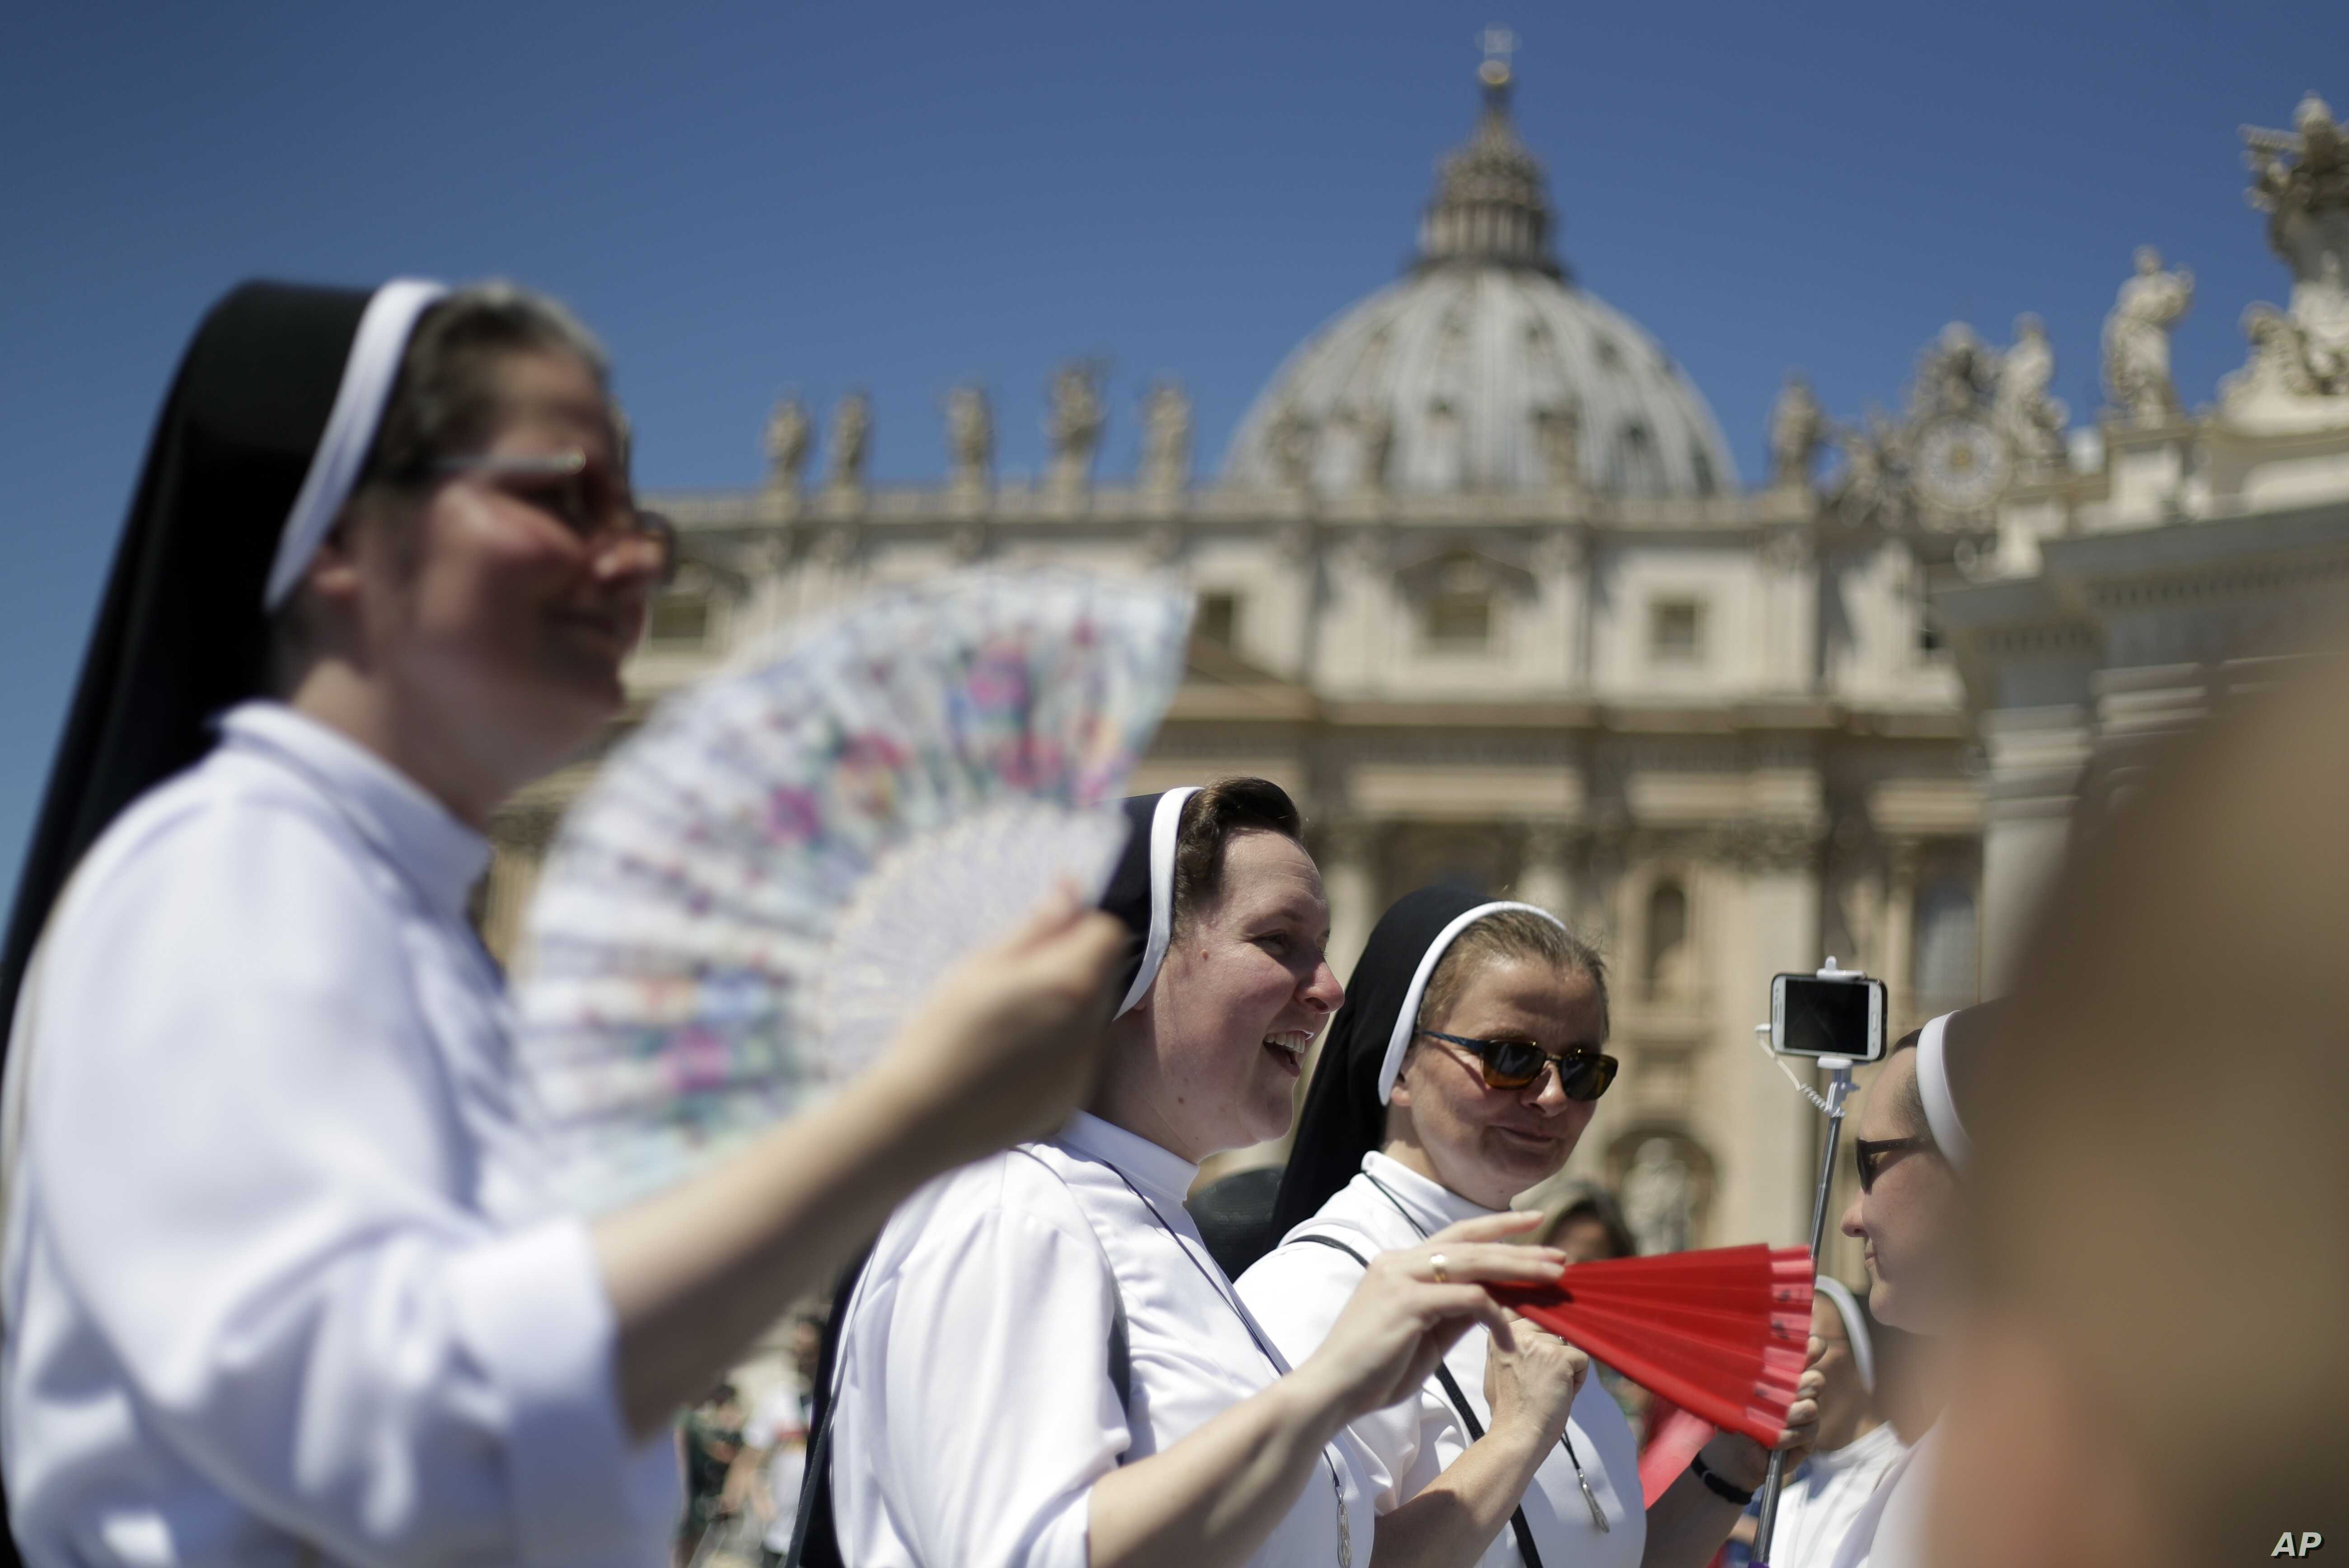 Nuns use fans to cool-off in St. Peter's Square at the Vatican, June 30, 2019.